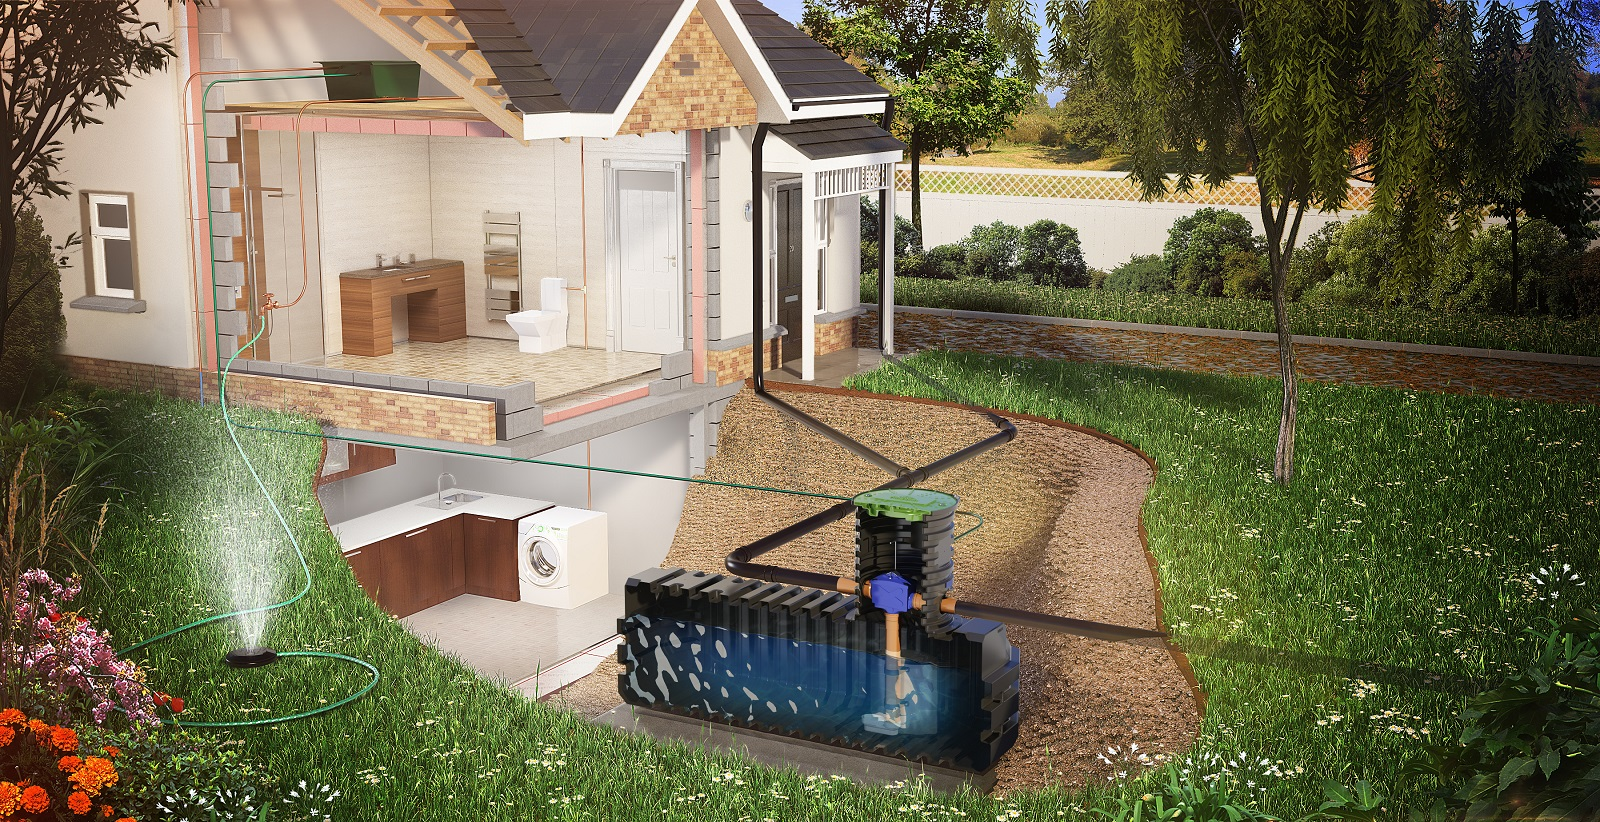 Domestic rainwater management system